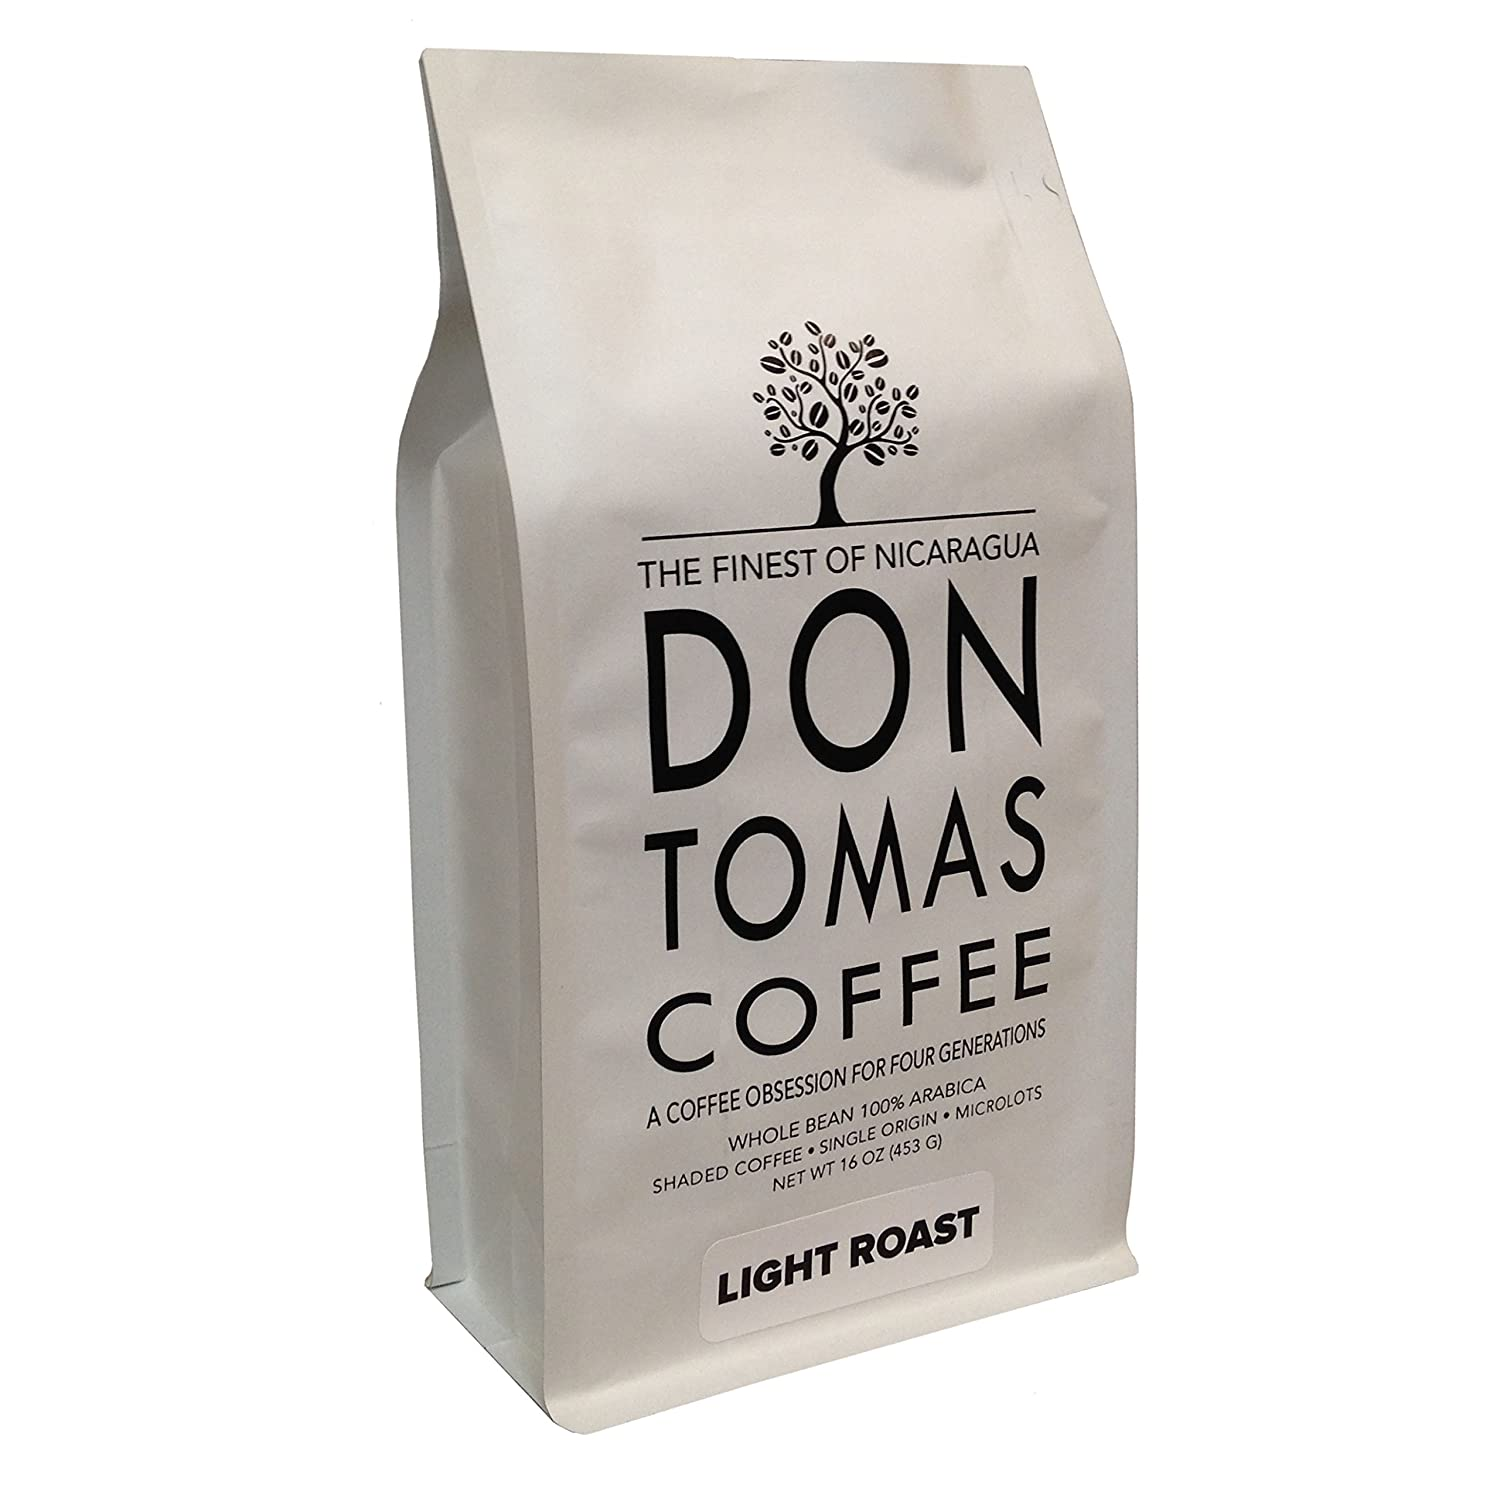 Second best coffee for beginners